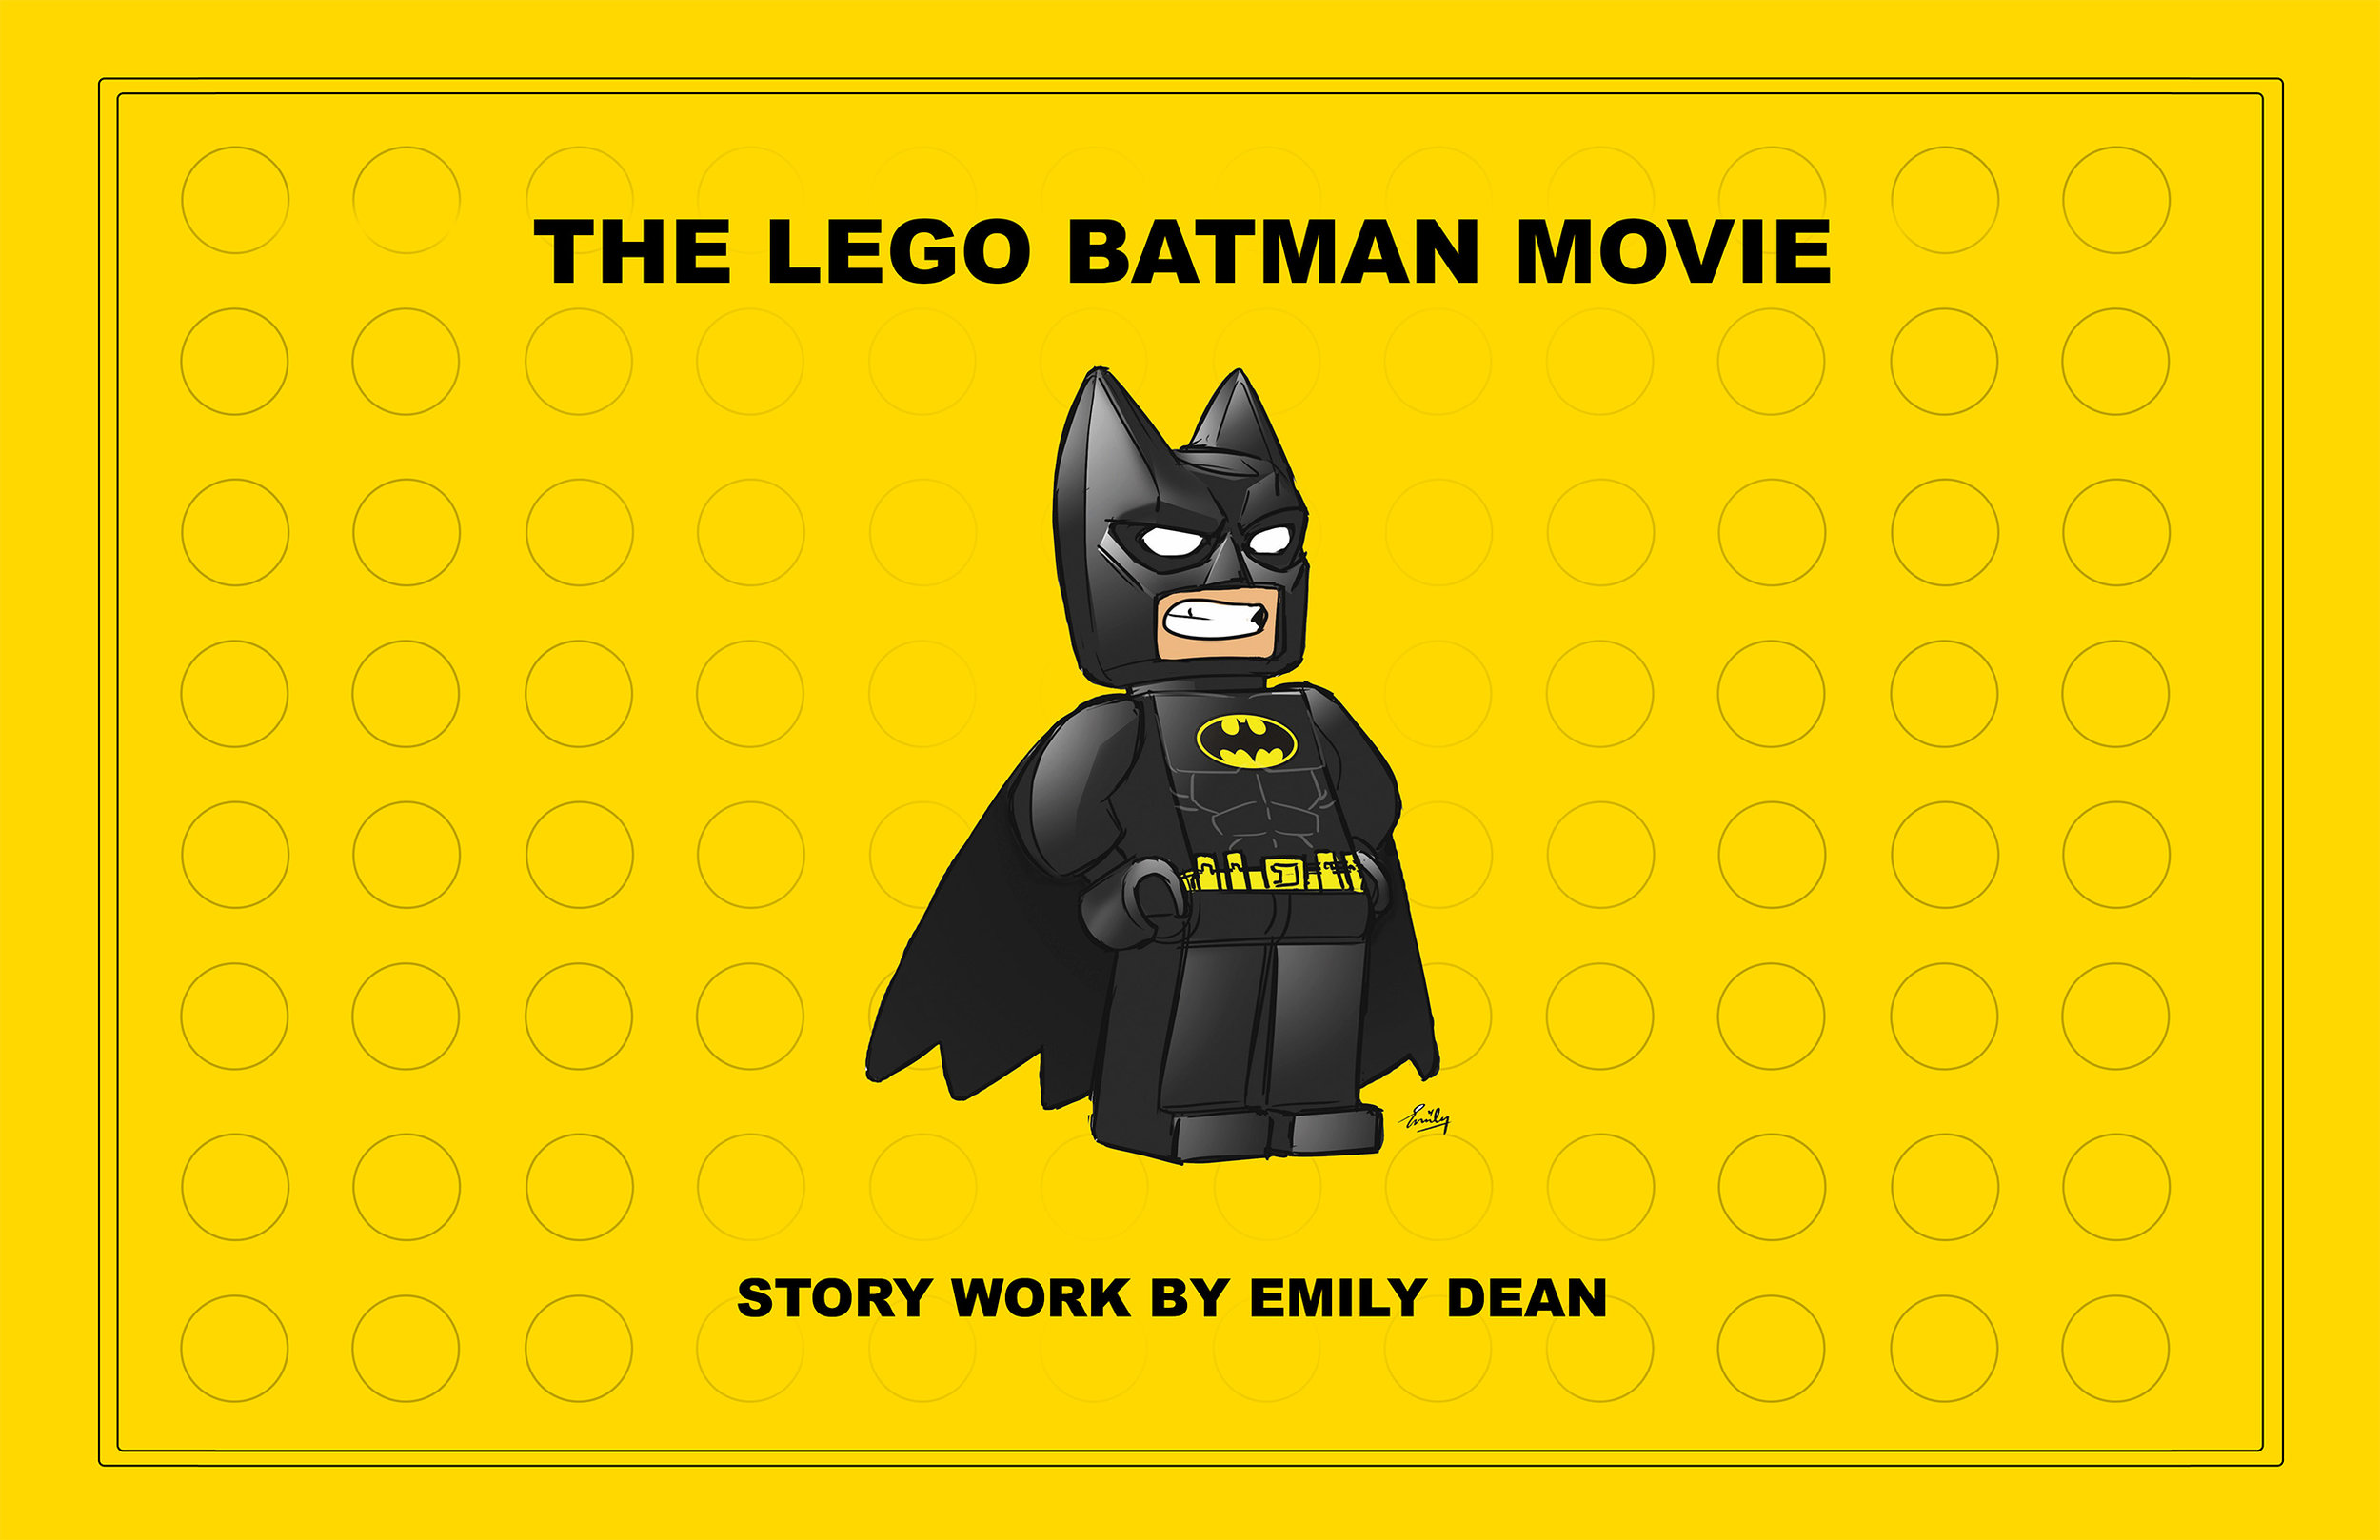 LEGOBATMAN__0000_Layer Comp 1.jpg